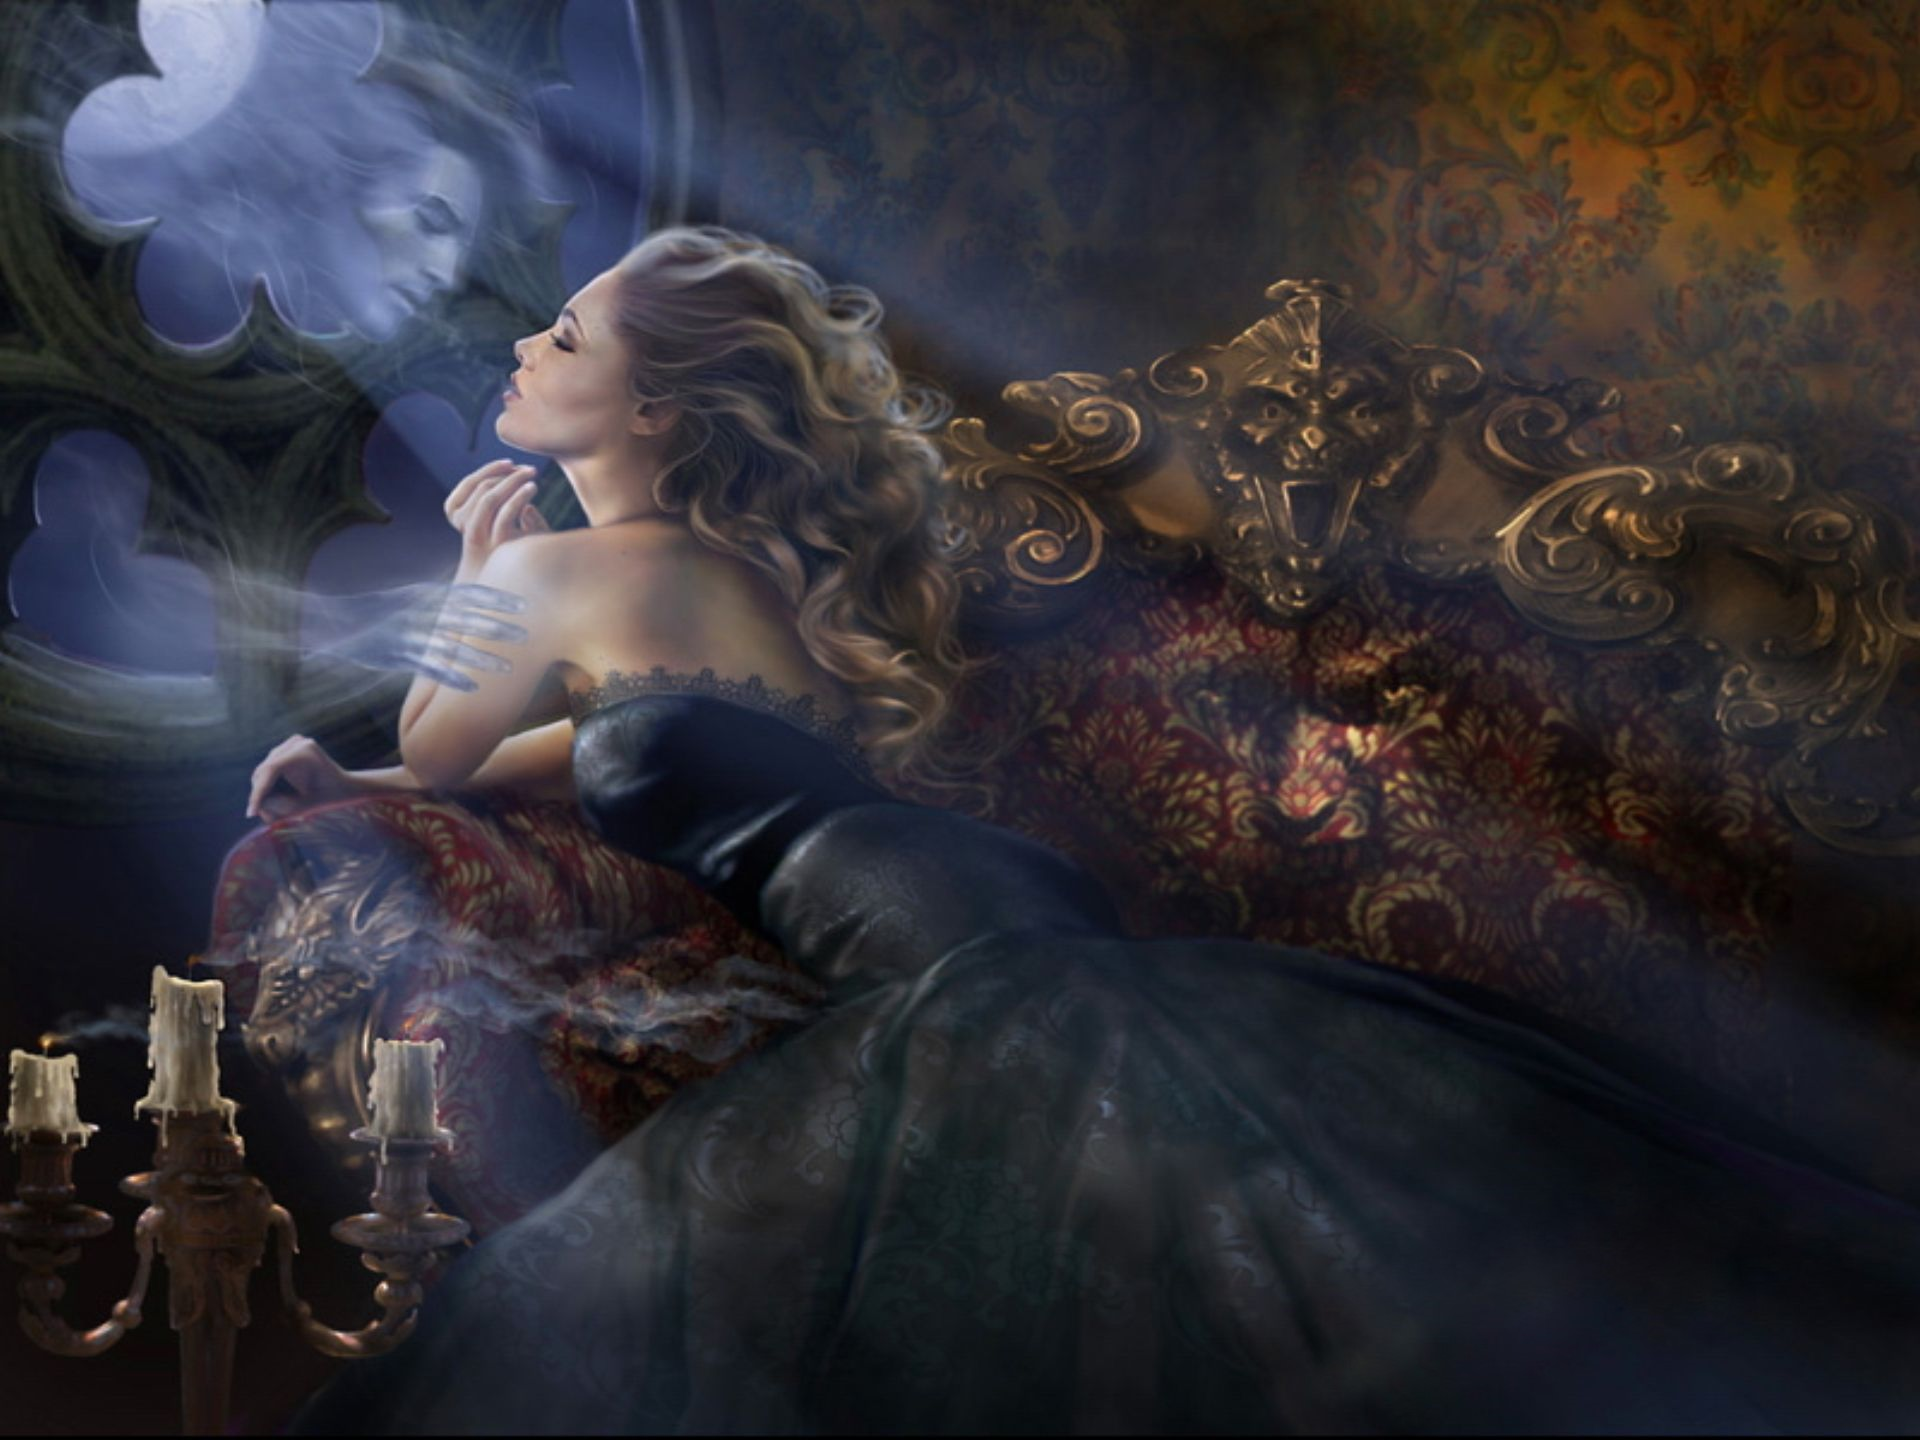 Love romance ghost mirror sad sorrow women blondes art fantasy wallpaper 1920x1440 37914 ...